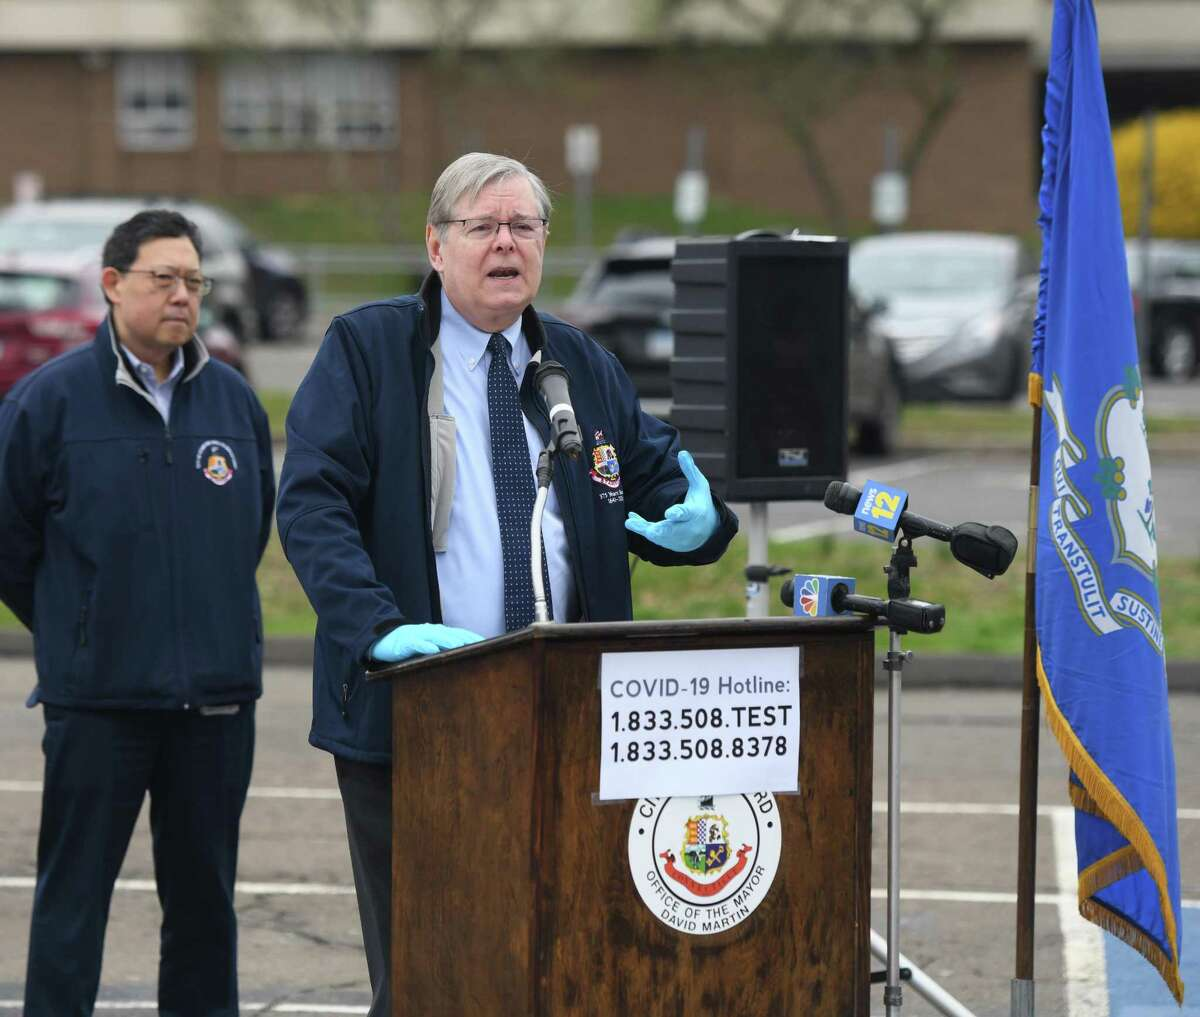 Stamford Mayor David Martin speaks about the coronavirus pandemic at the testing center at Westhill High School in Stamford, Conn. Monday, March 30, 2020.